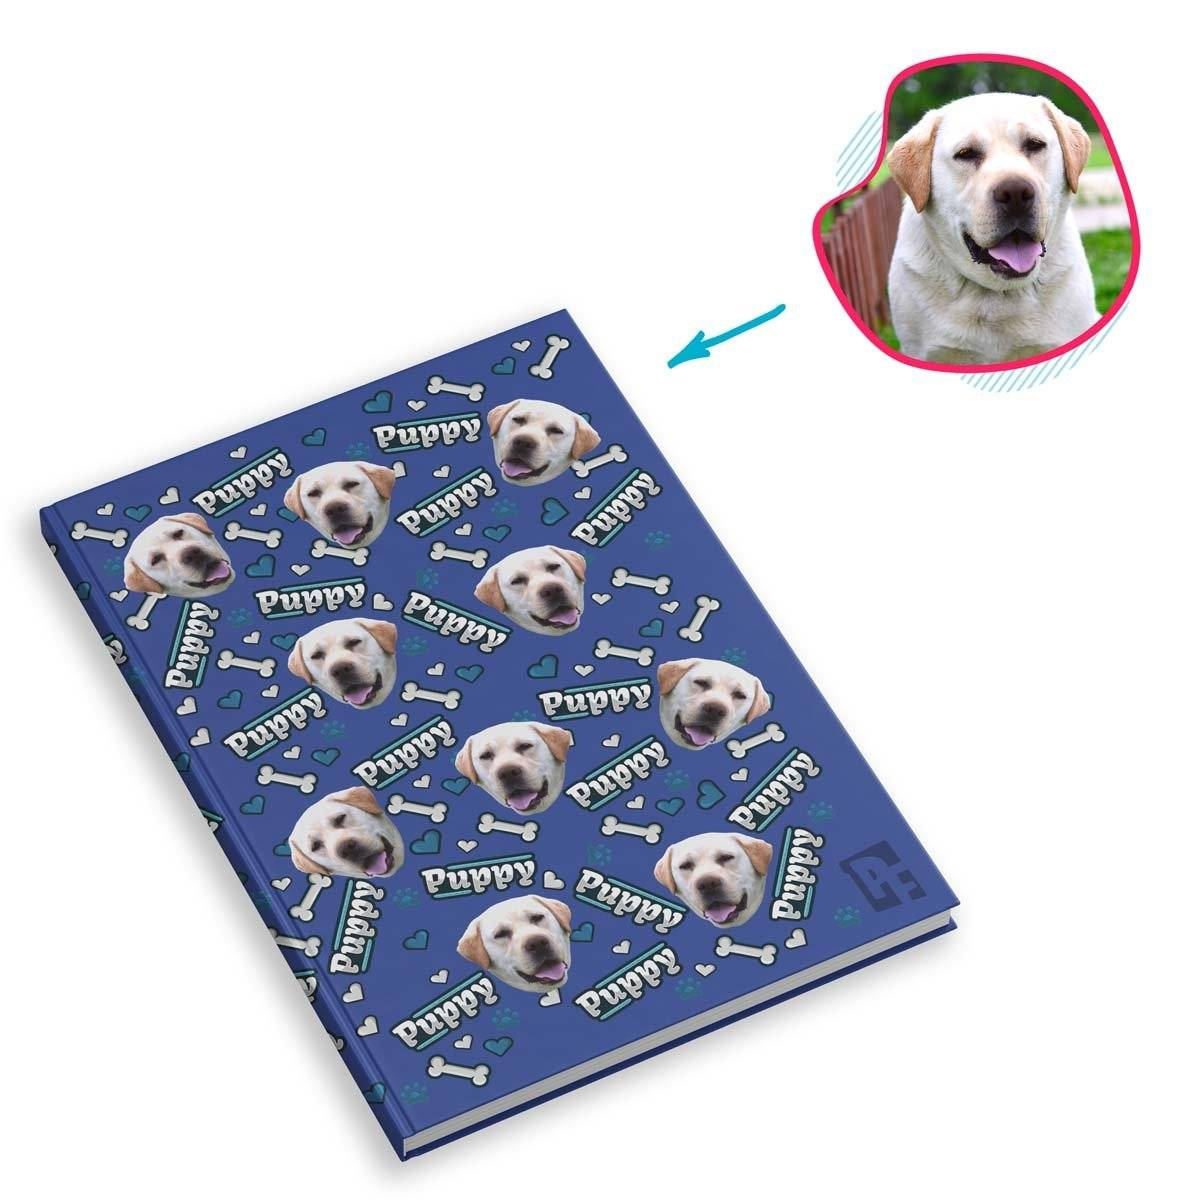 darkblue Puppy Notebook personalized with photo of face printed on them